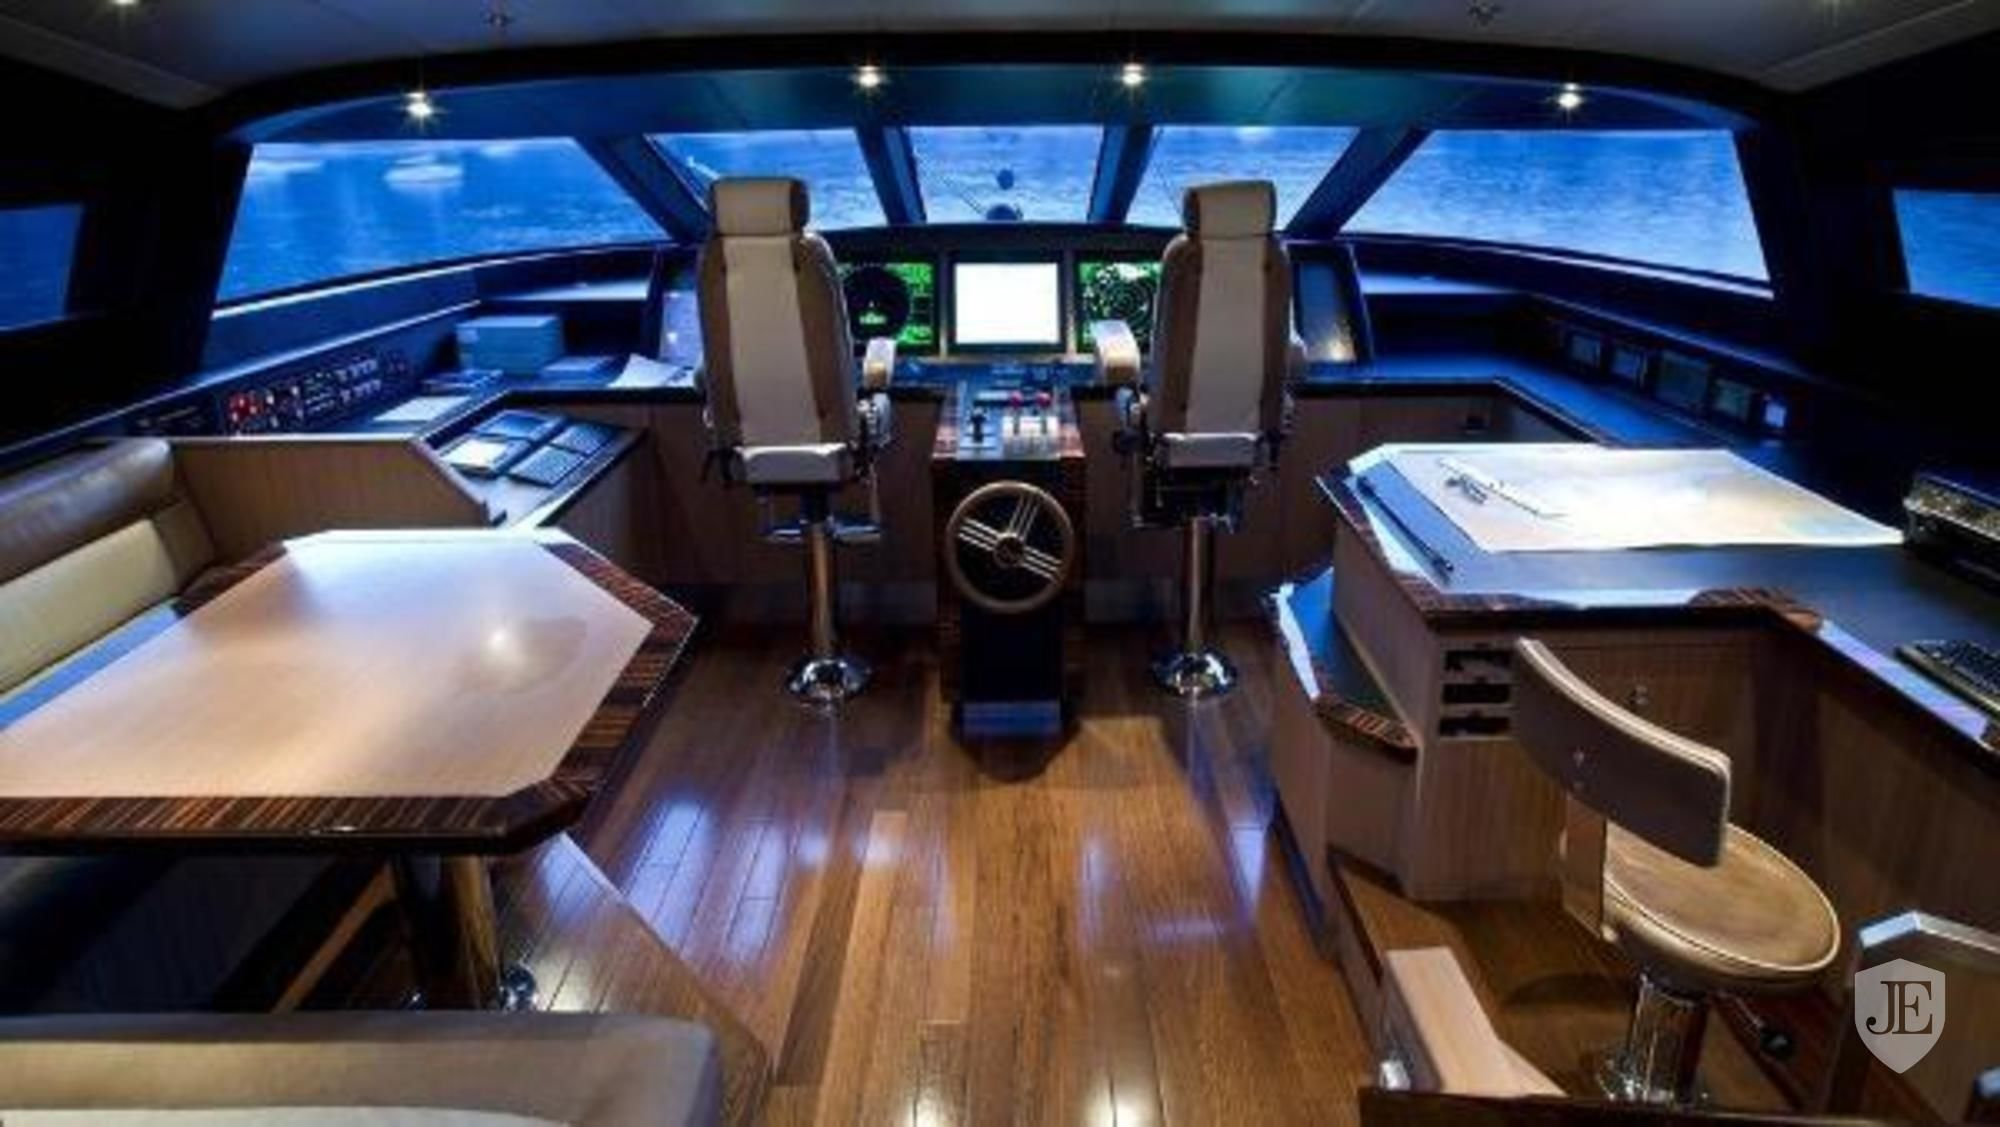 Palmer Johnson PJ150 in France for sale on JamesEdition | Boats for sale,  Johnson, Luxury yachts